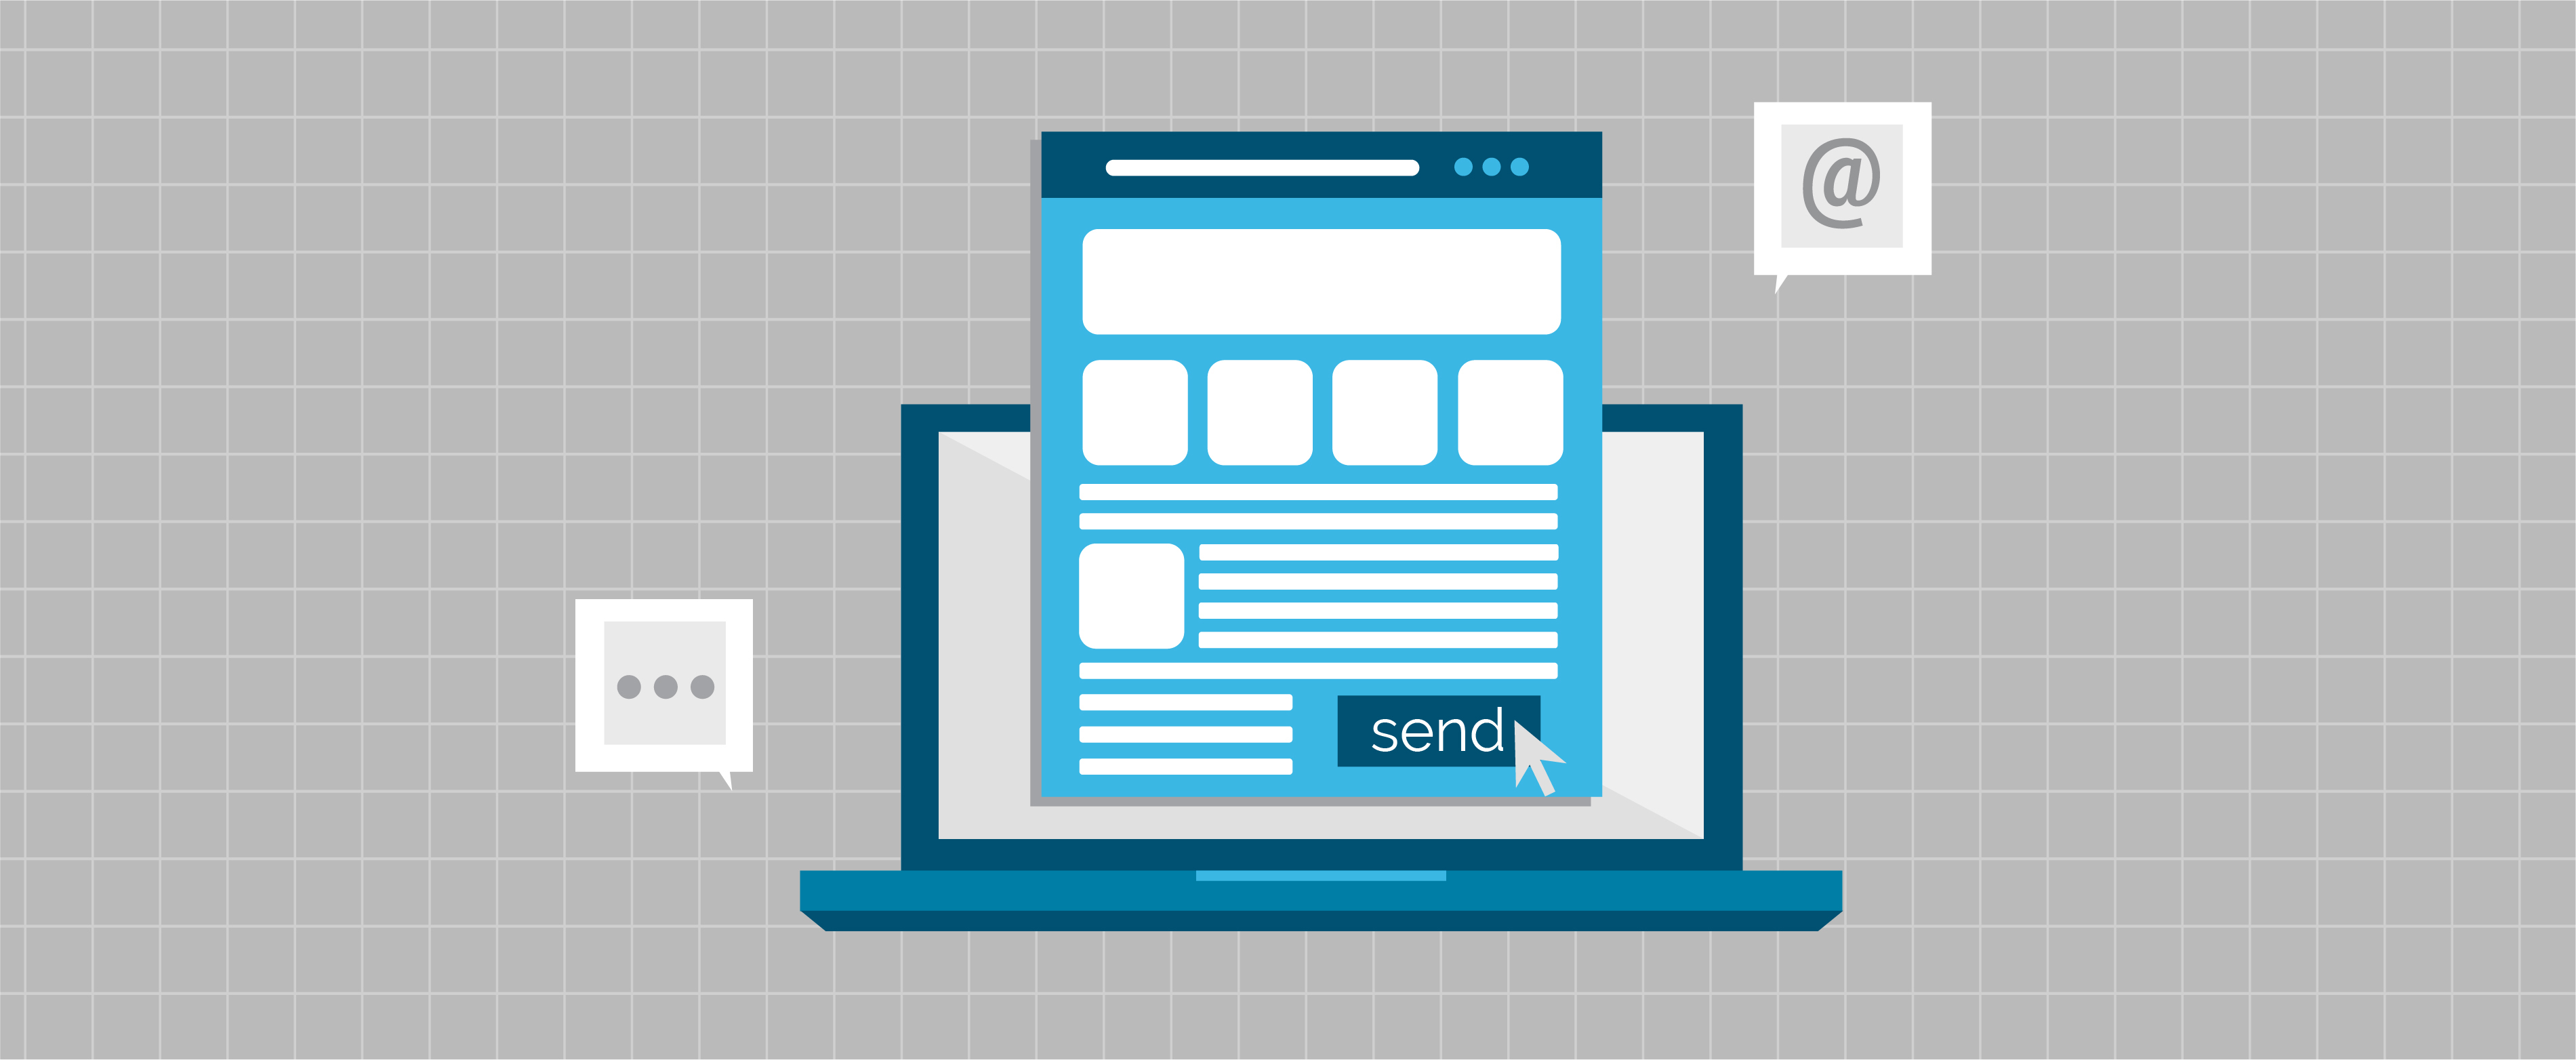 Here's how to send good email marketing campaigns.